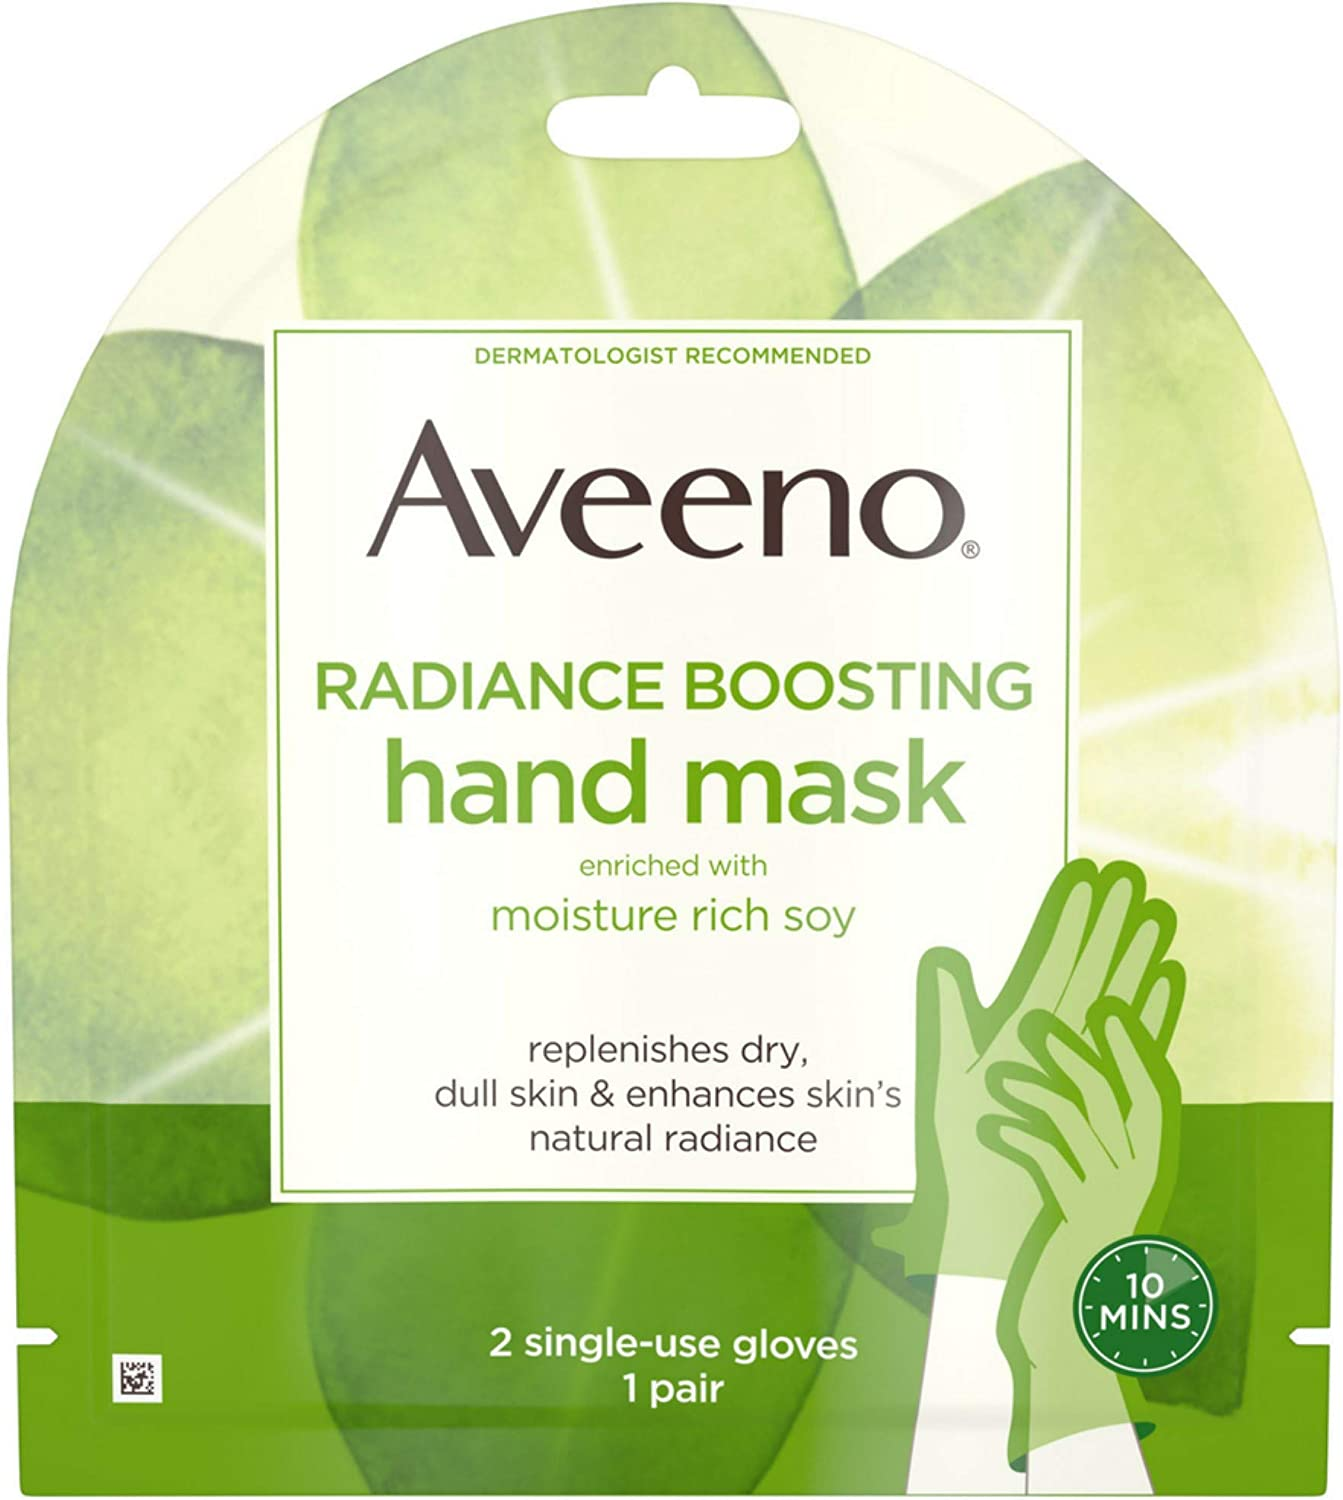 Aveeno Radiance Mask with Moisture Rich Soy, Moisturizing Hand Gloves to Replenish Dry Dull Skin, Paraben-Free, 2 Single-Use Gloves 1 ea Johnson & Johnson